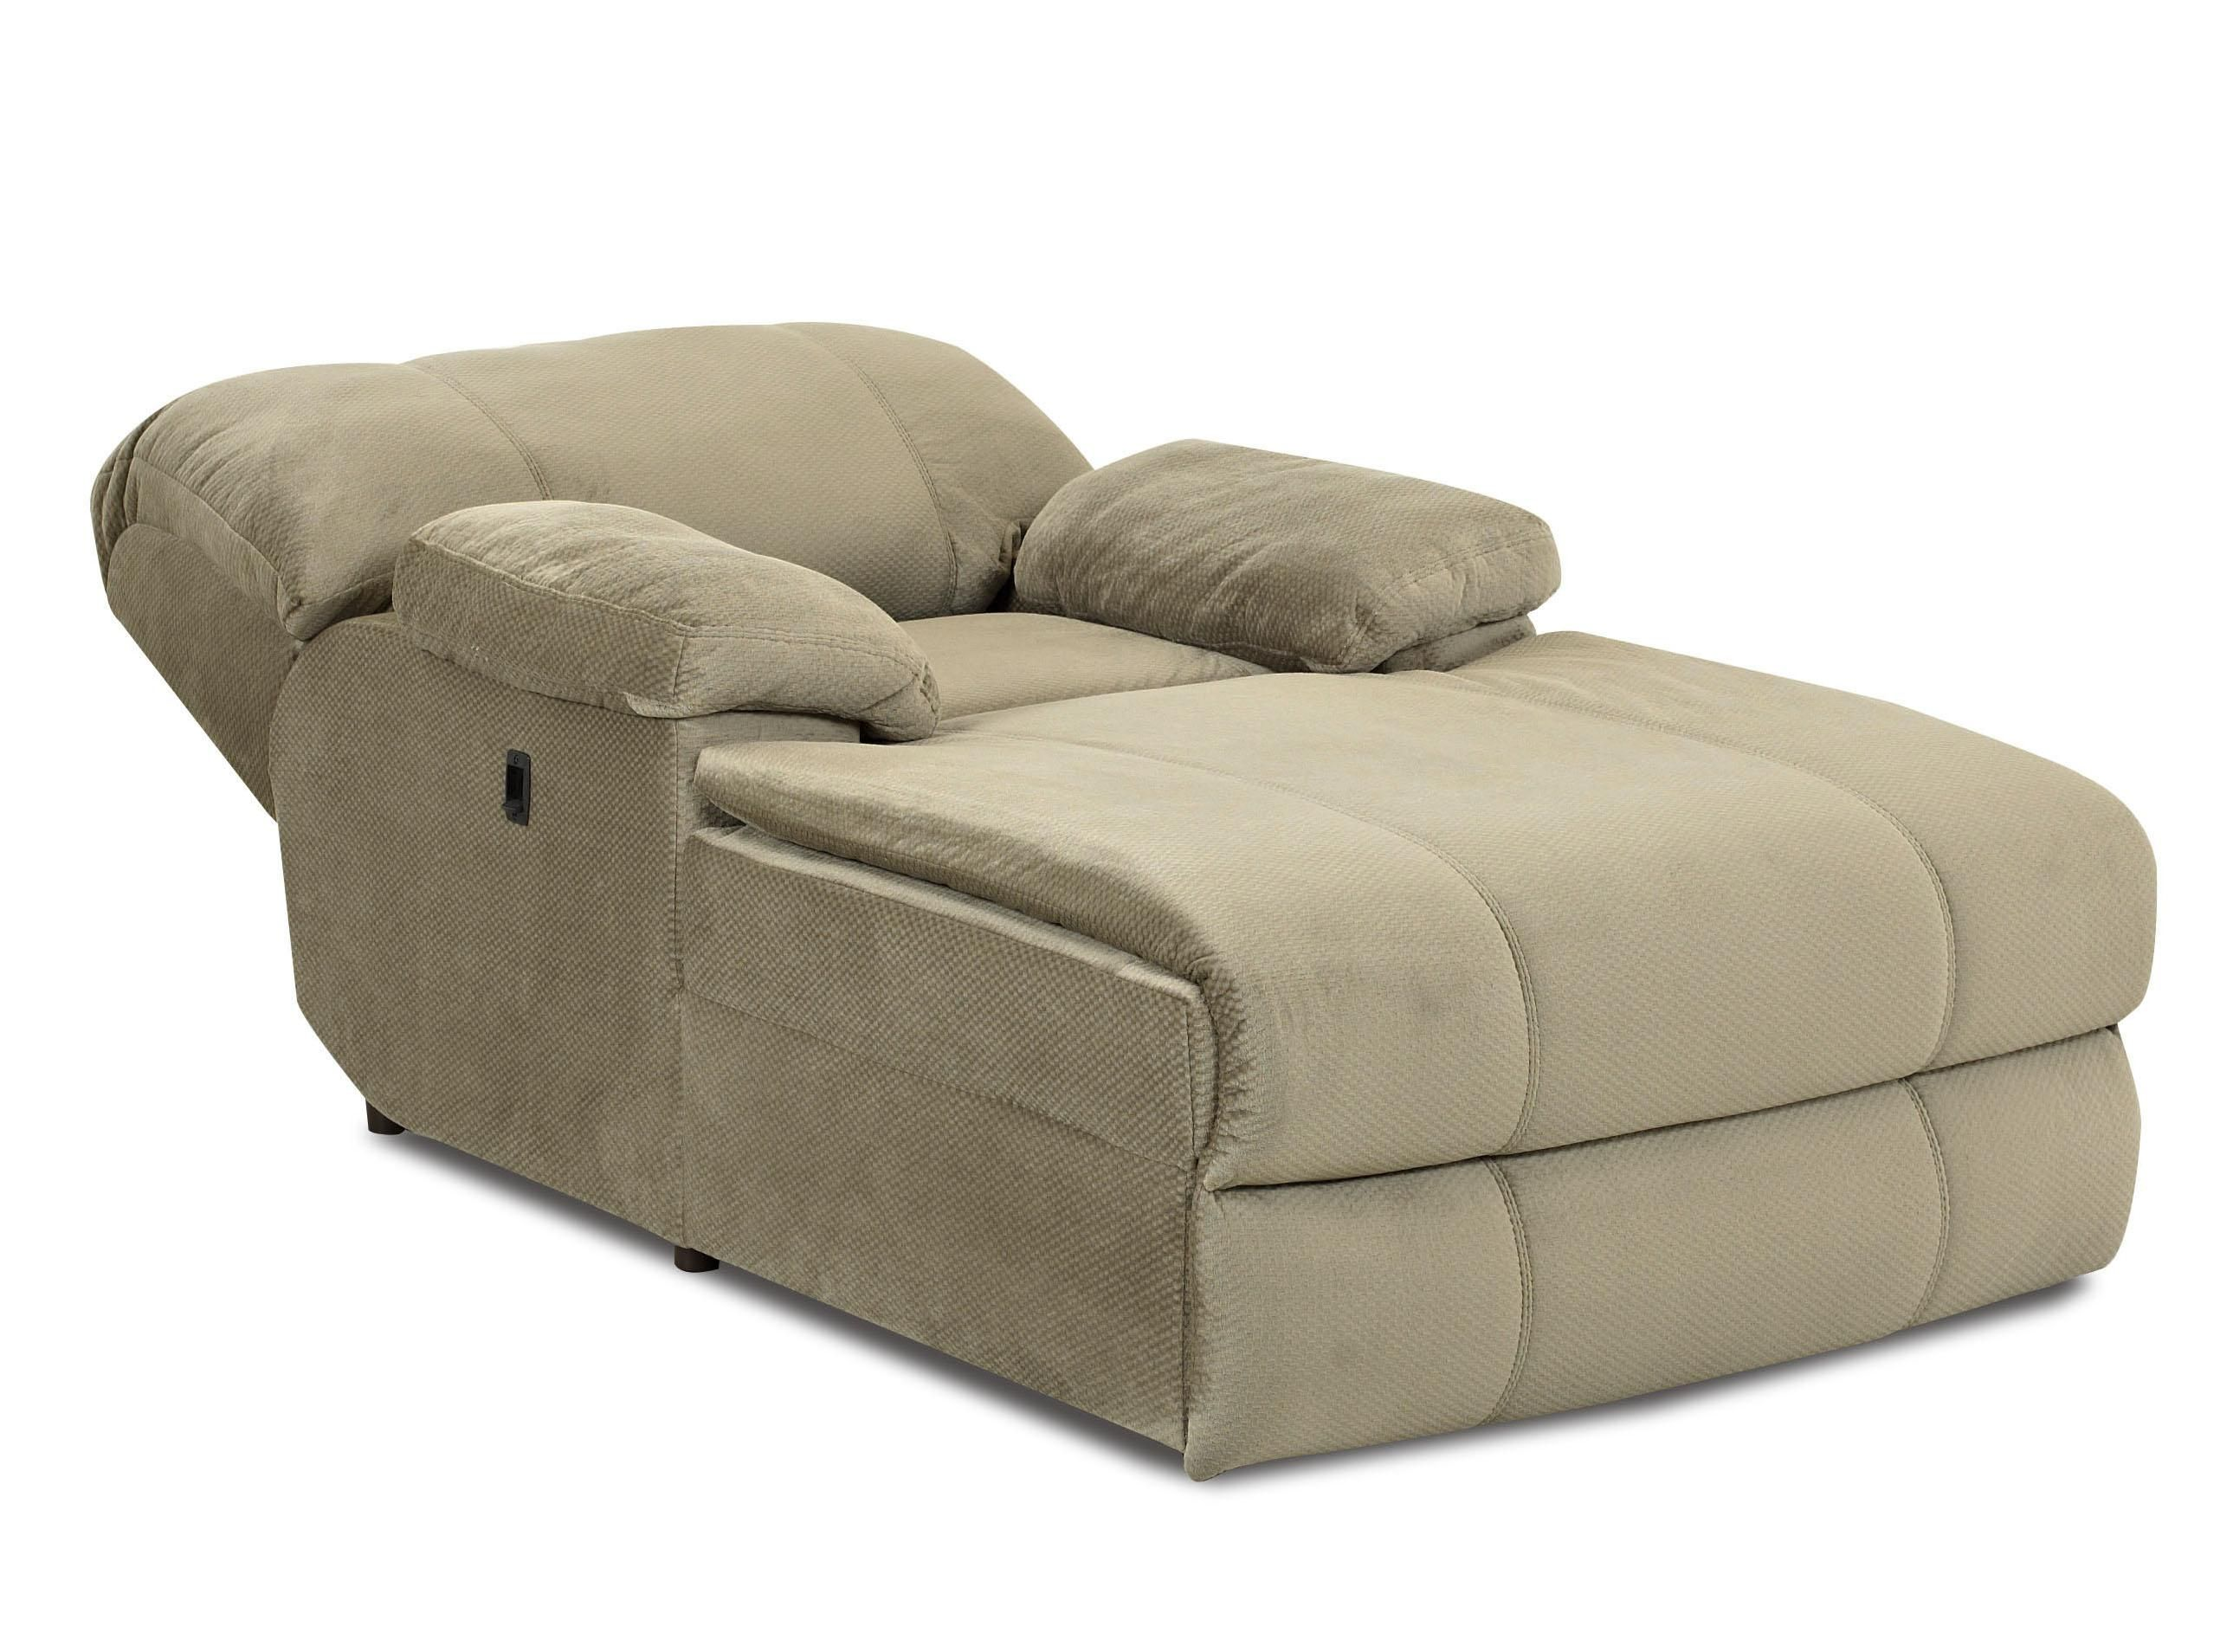 Charmant Indoor Oversized Chaise Lounge | Kensington Reclining Chaise Lounge